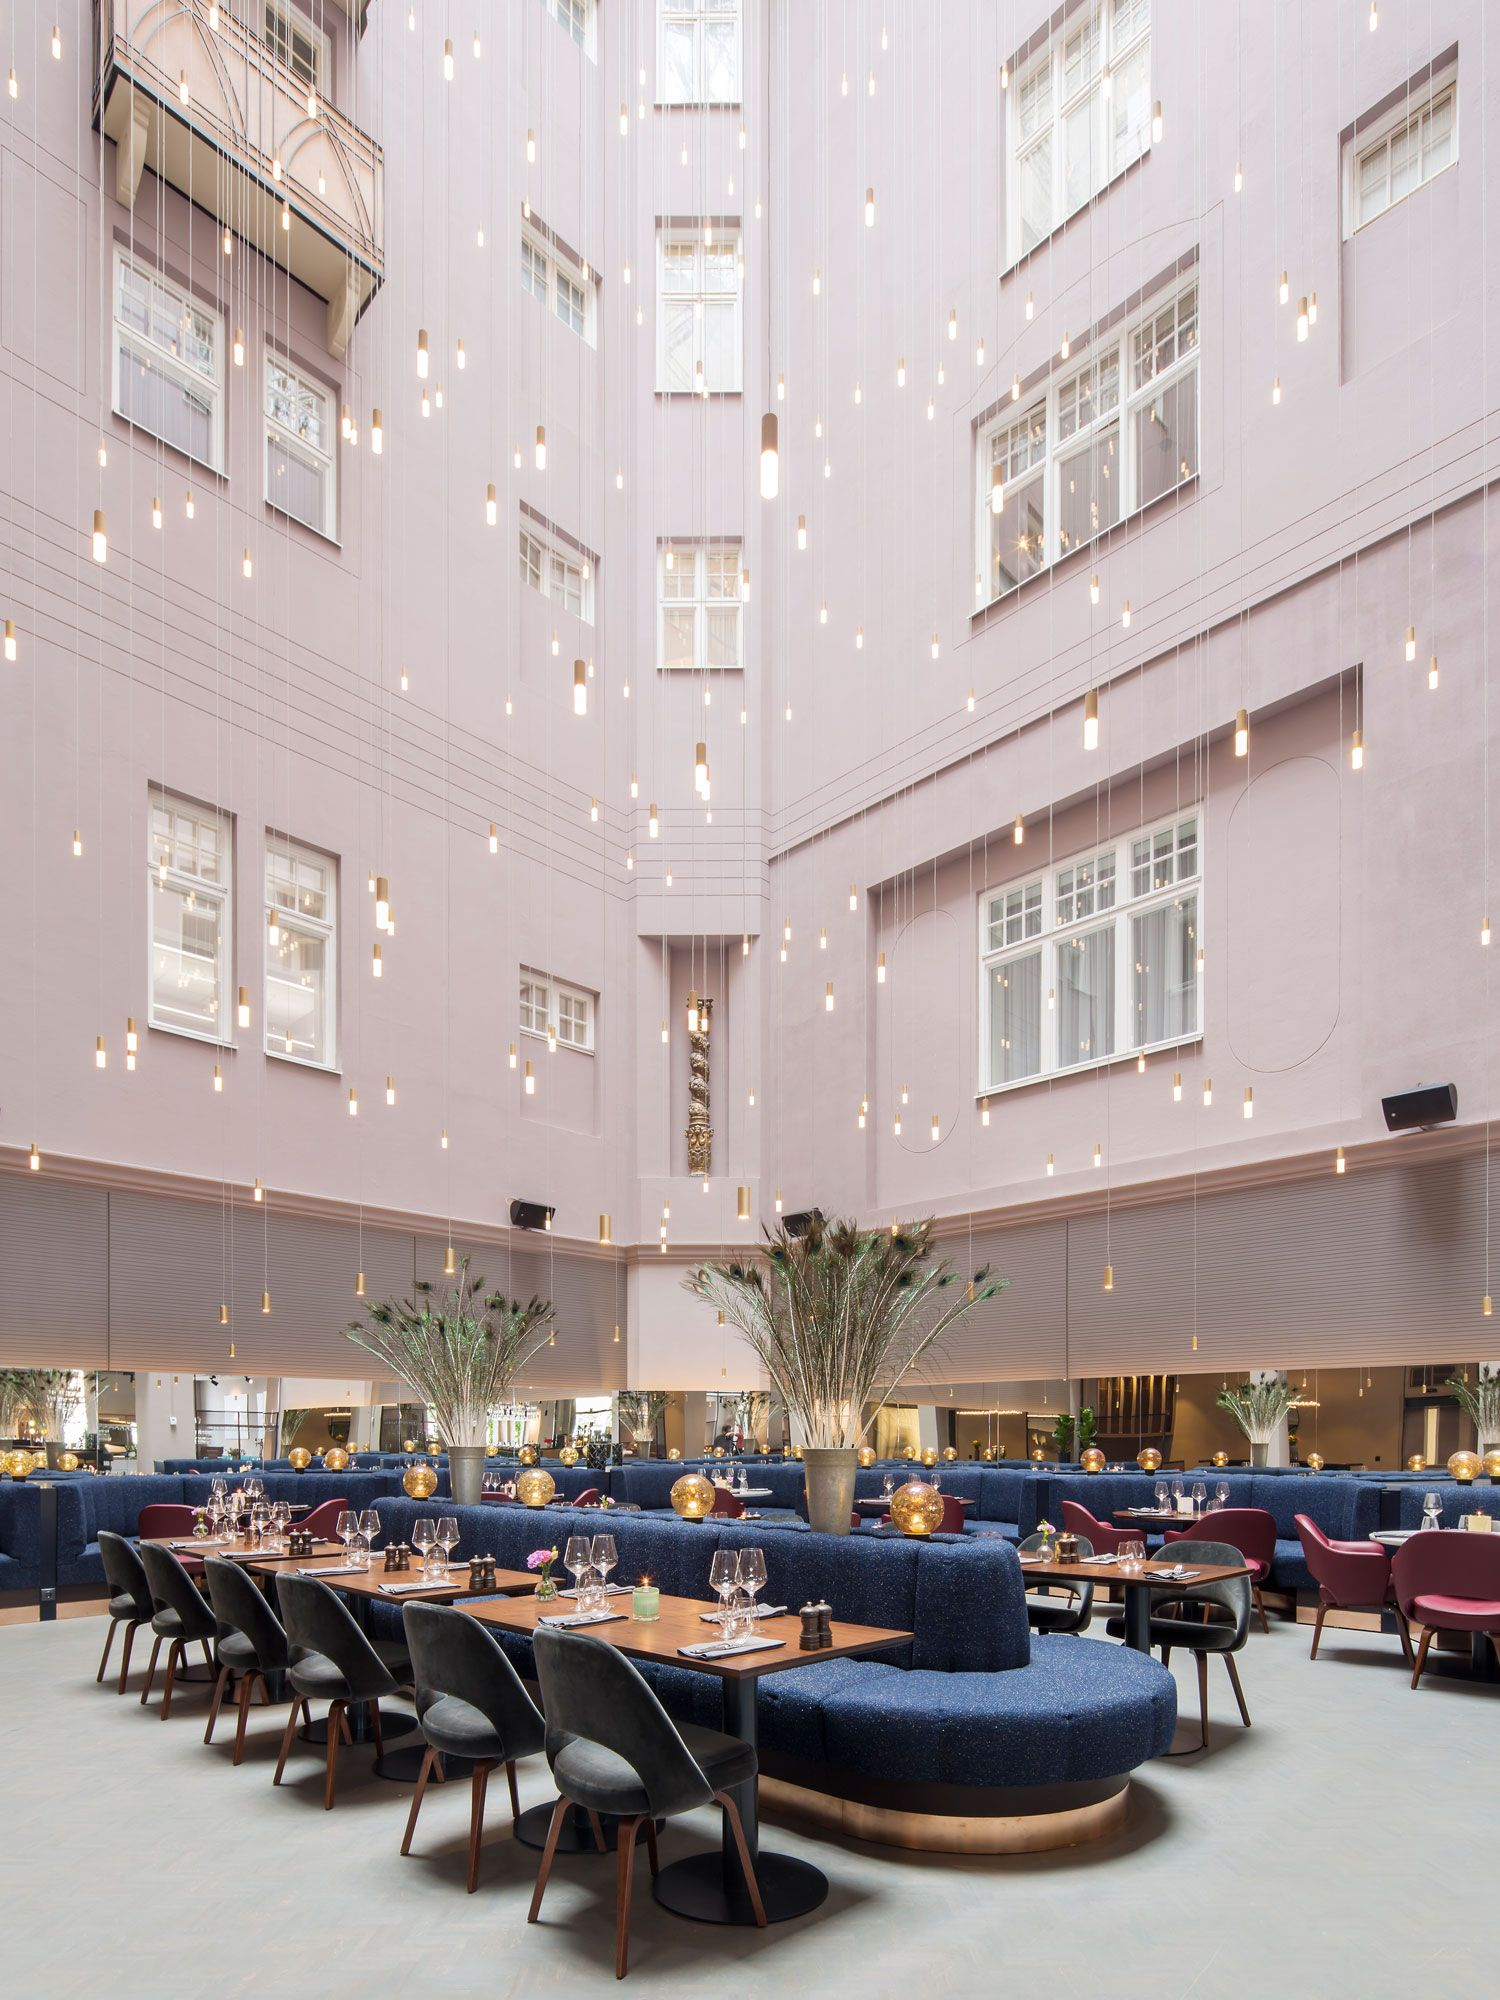 New Radisson Collection Hotel In Stockholm By Wingårdhs